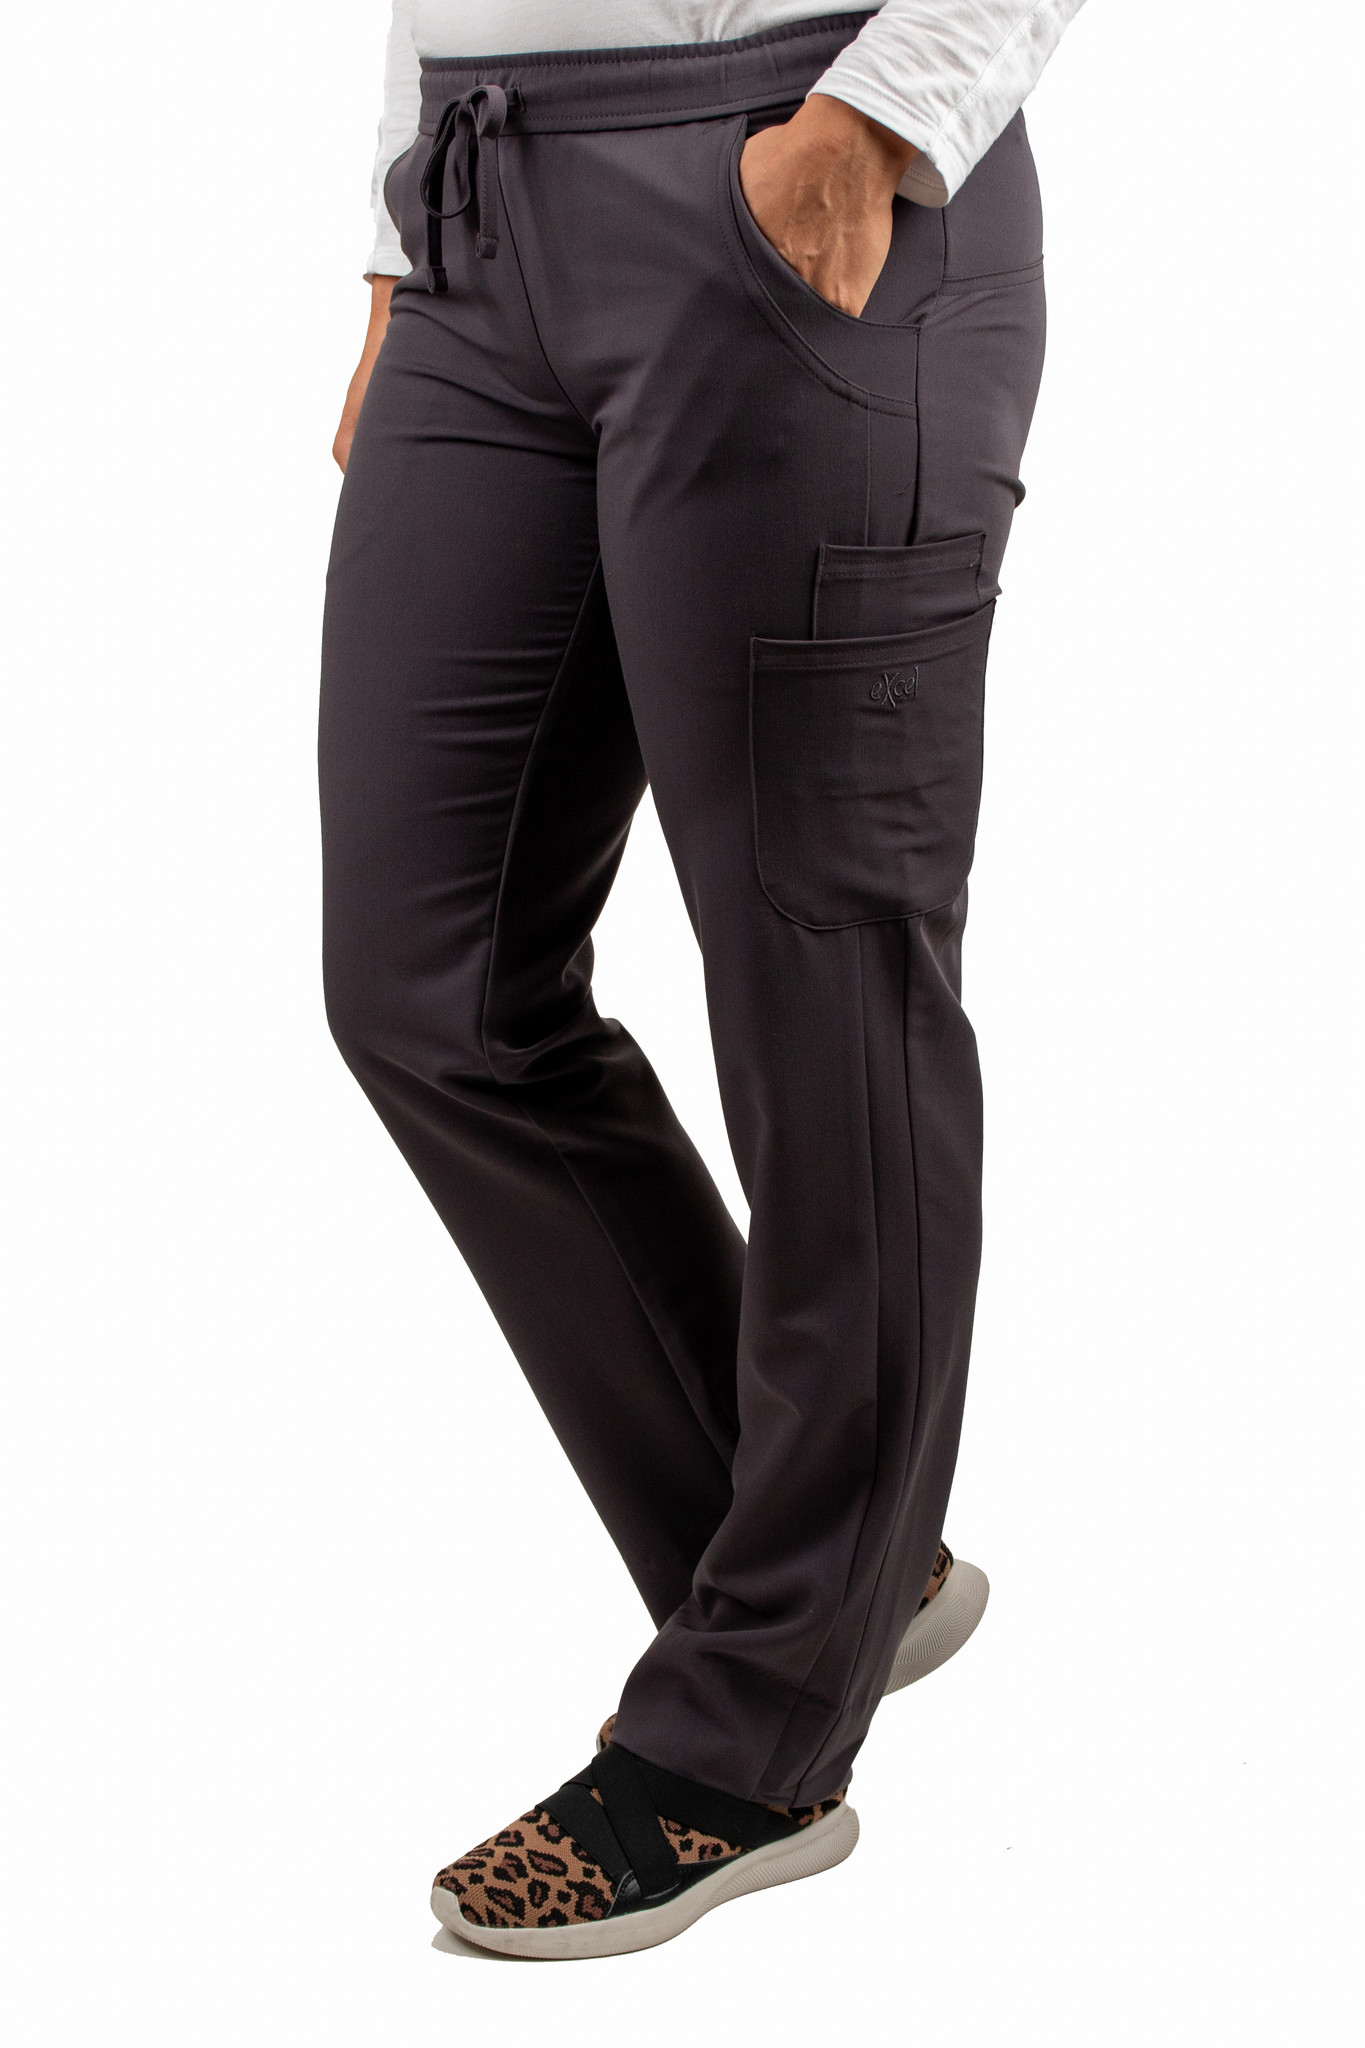 Carbon Women's Drawstring Waistband Fitted Pants 960